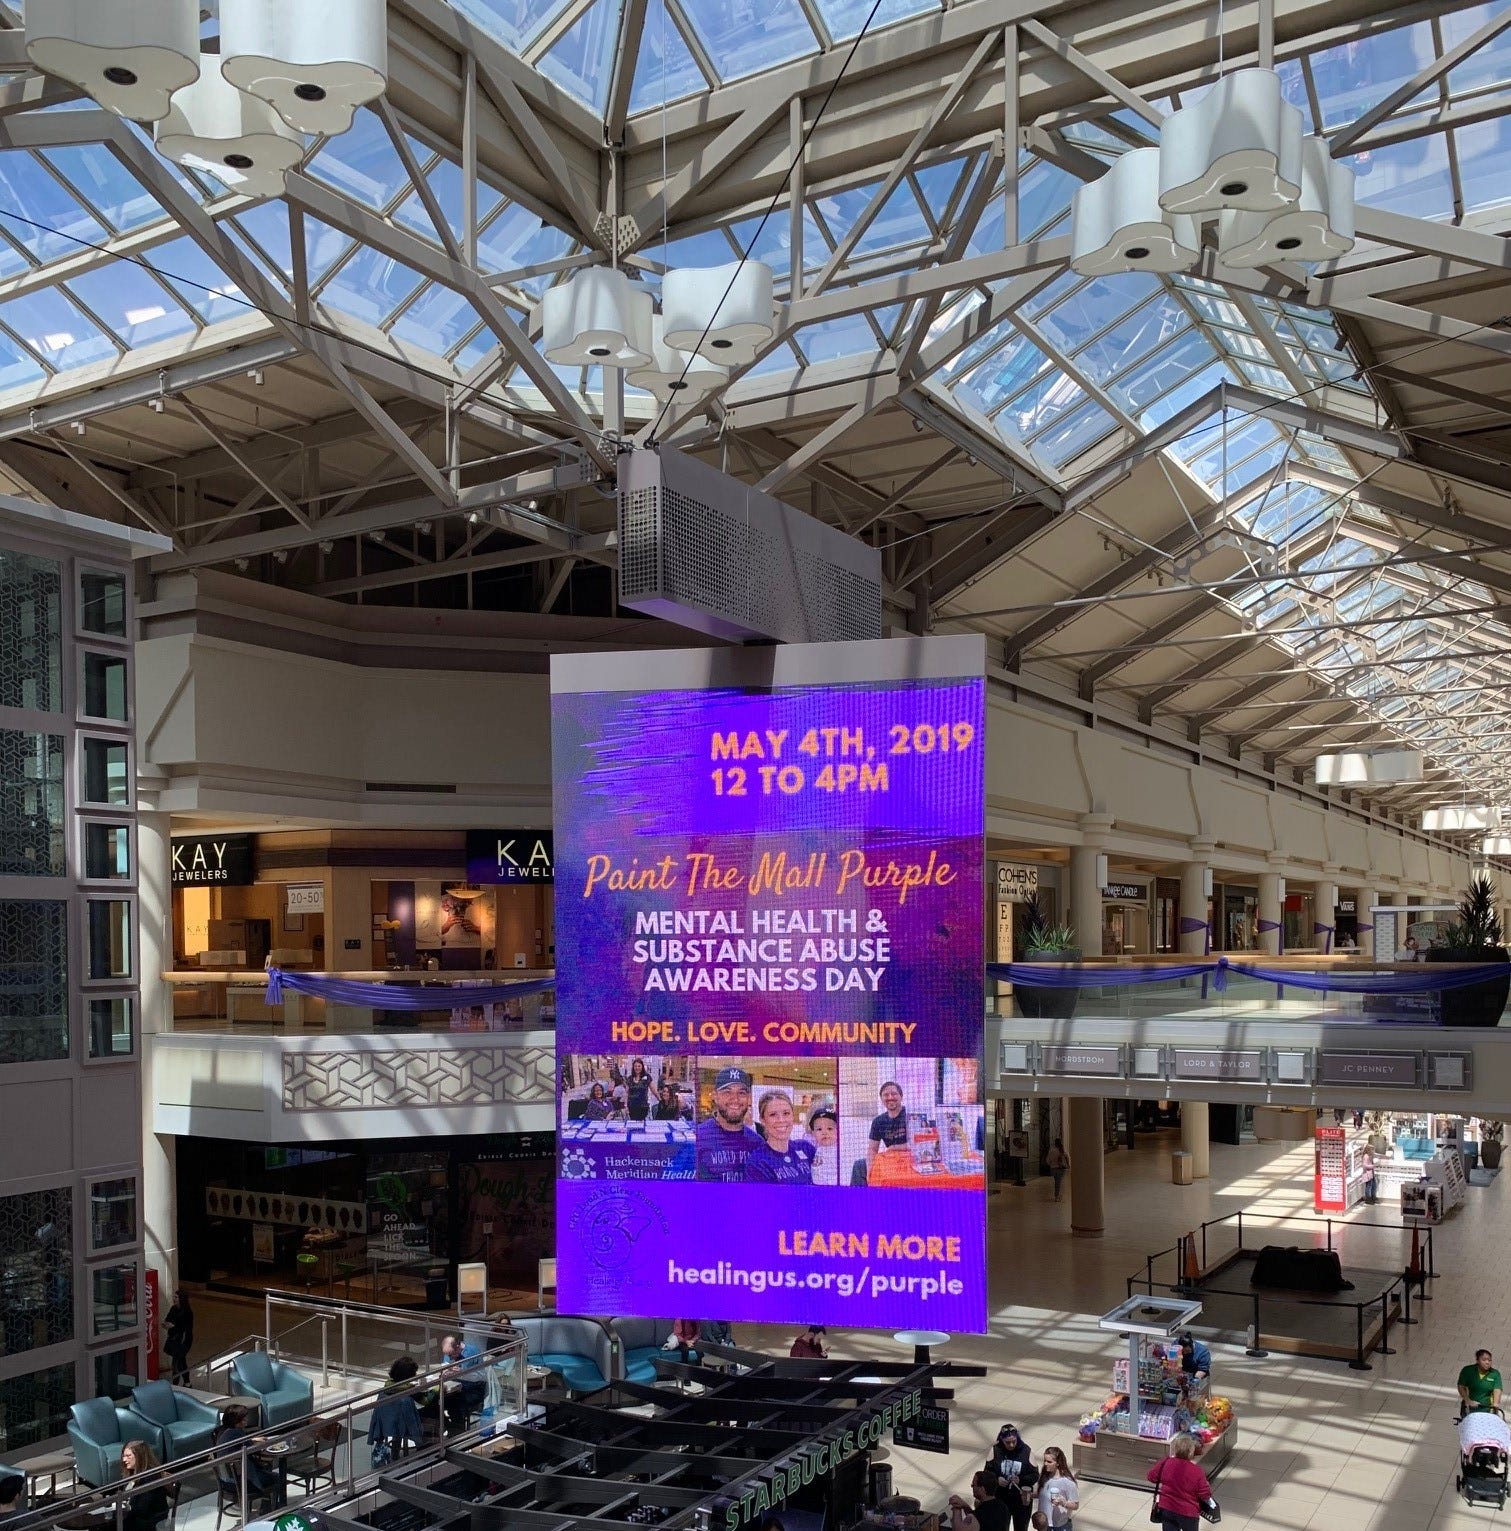 Freehold Raceway Mall is turning purple Saturday for mental health